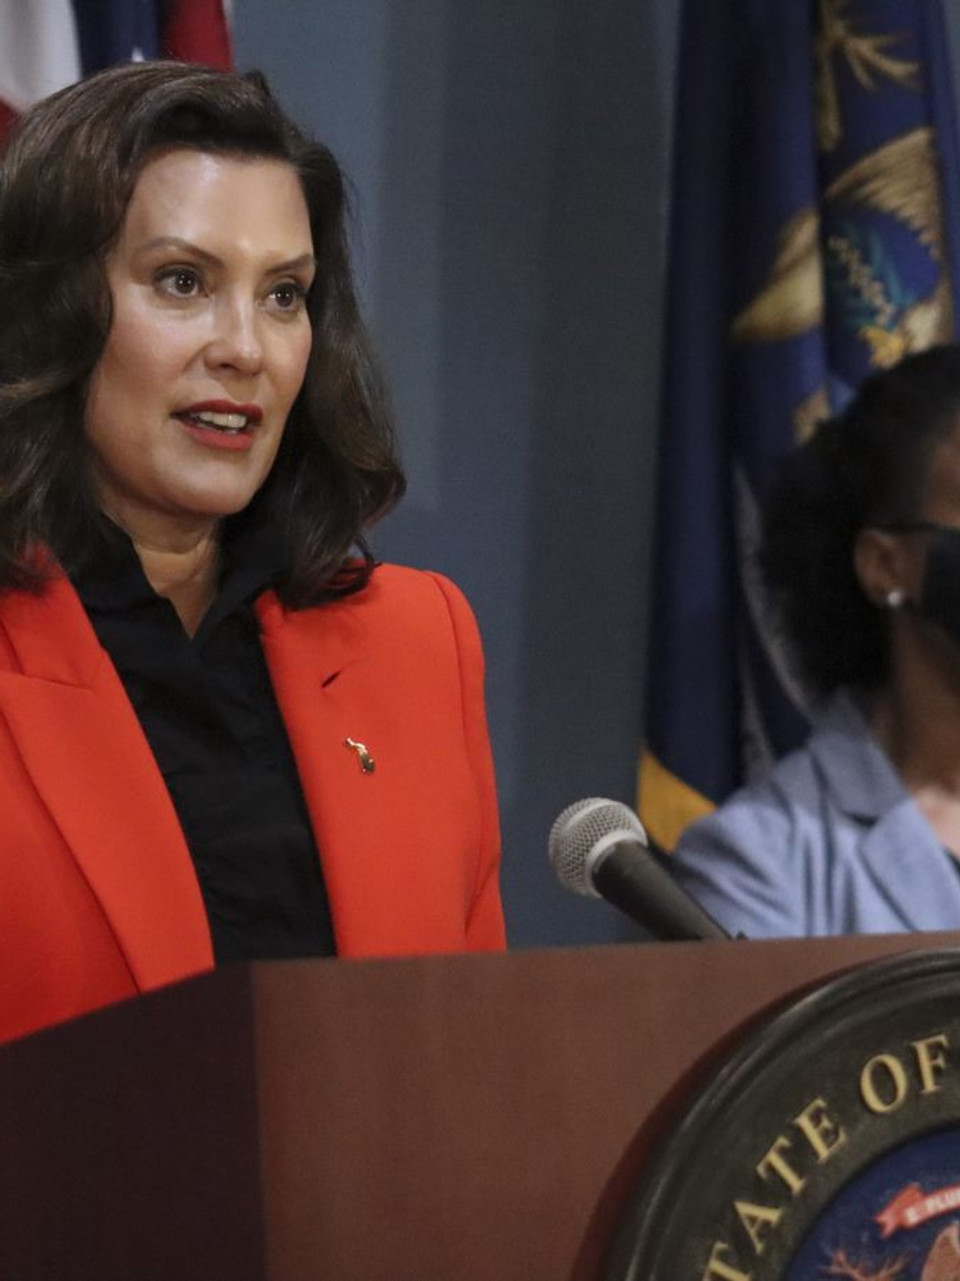 Gov Whitmer Vetoes Bill To Preven Covid 19 Patients To Be Housed In Nursing Homes Weyi